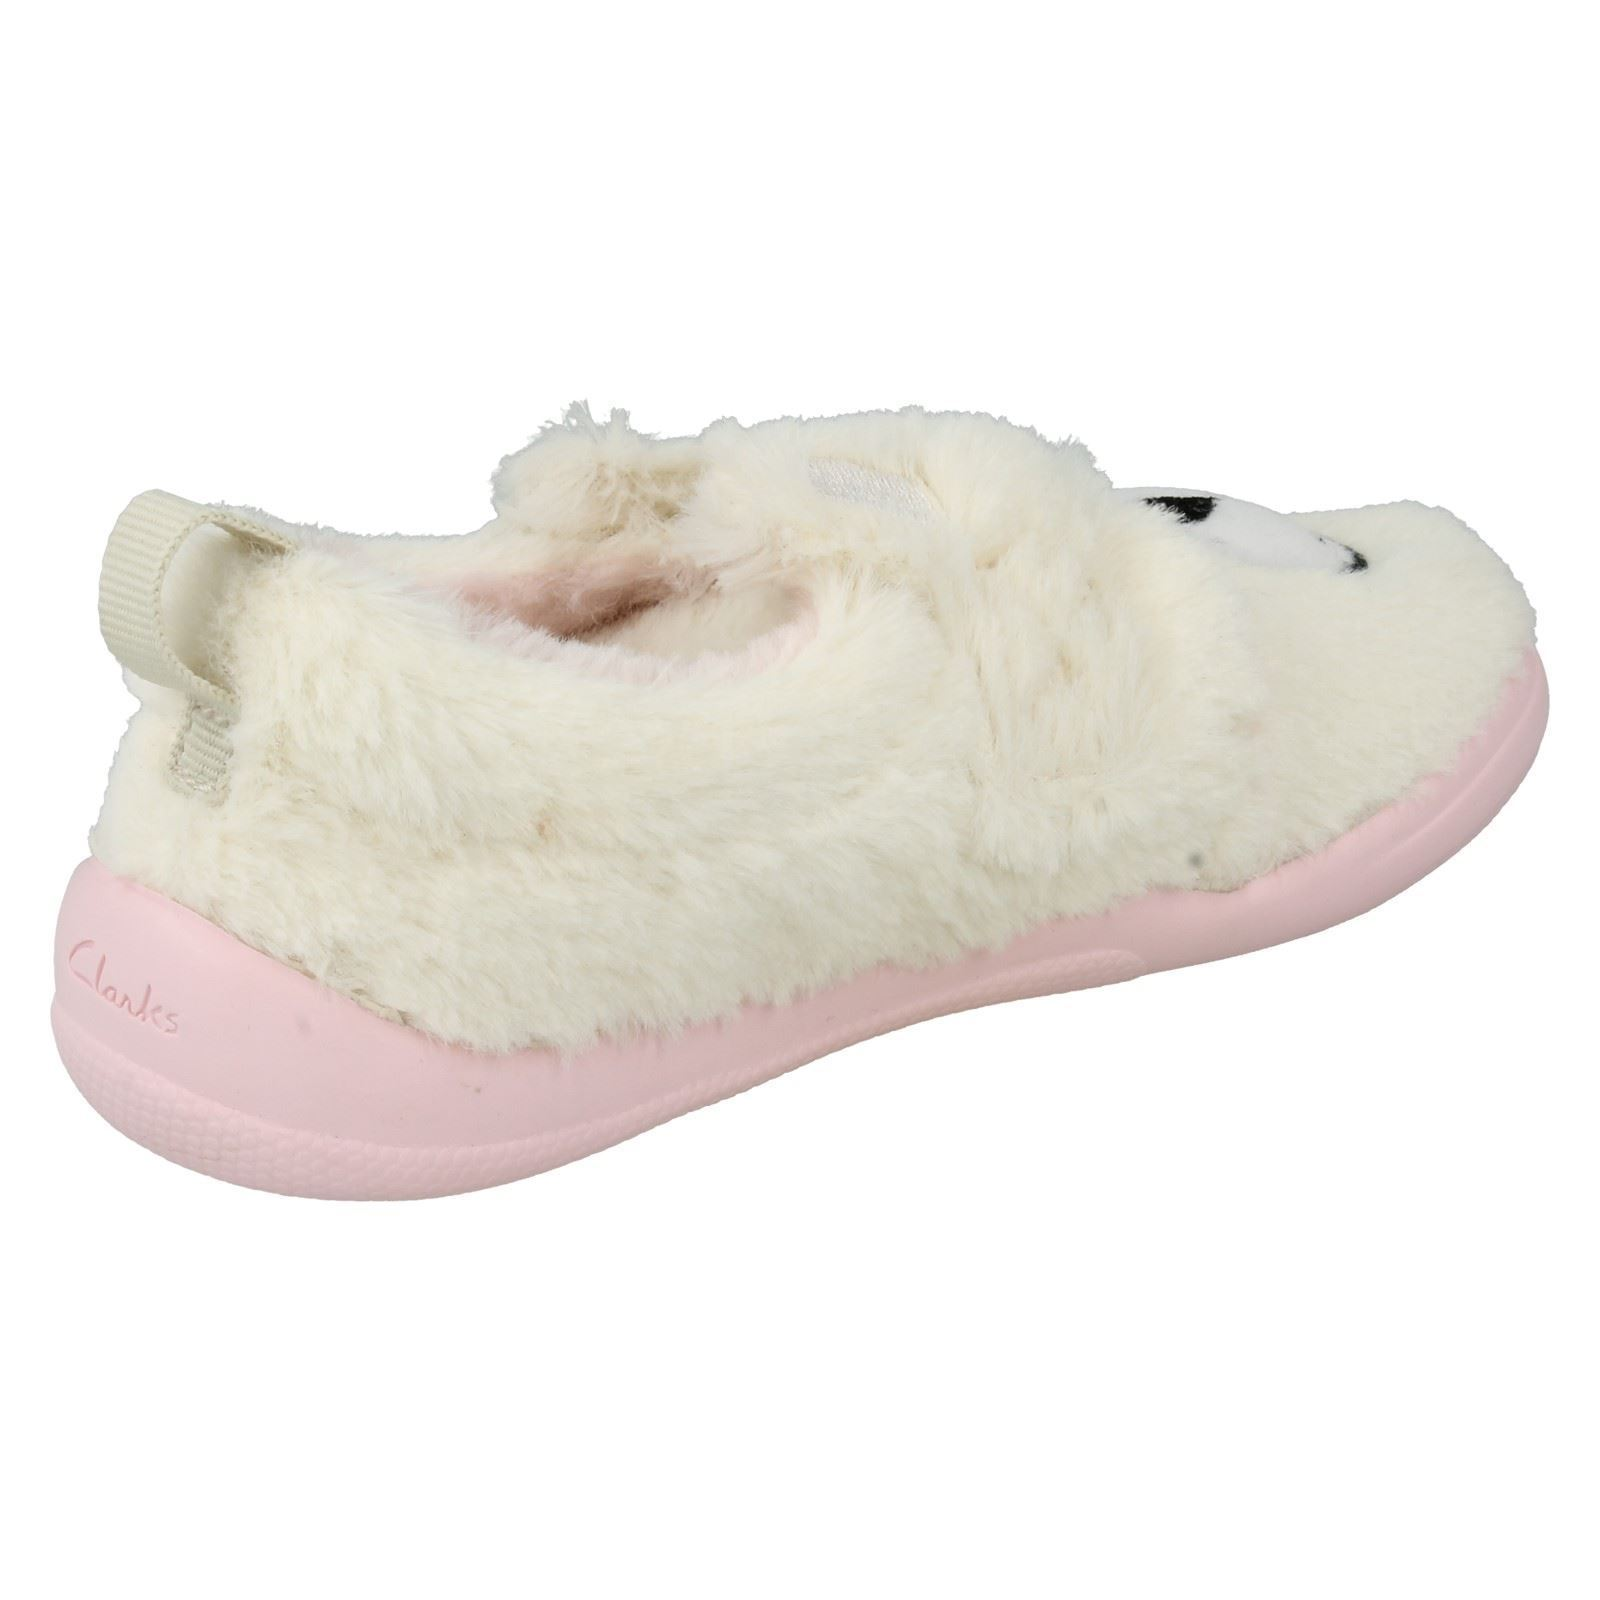 Shoes Clarks Girls Seasonal Cuba Bear Inf Textile Slippers In Pink Combi Slippers